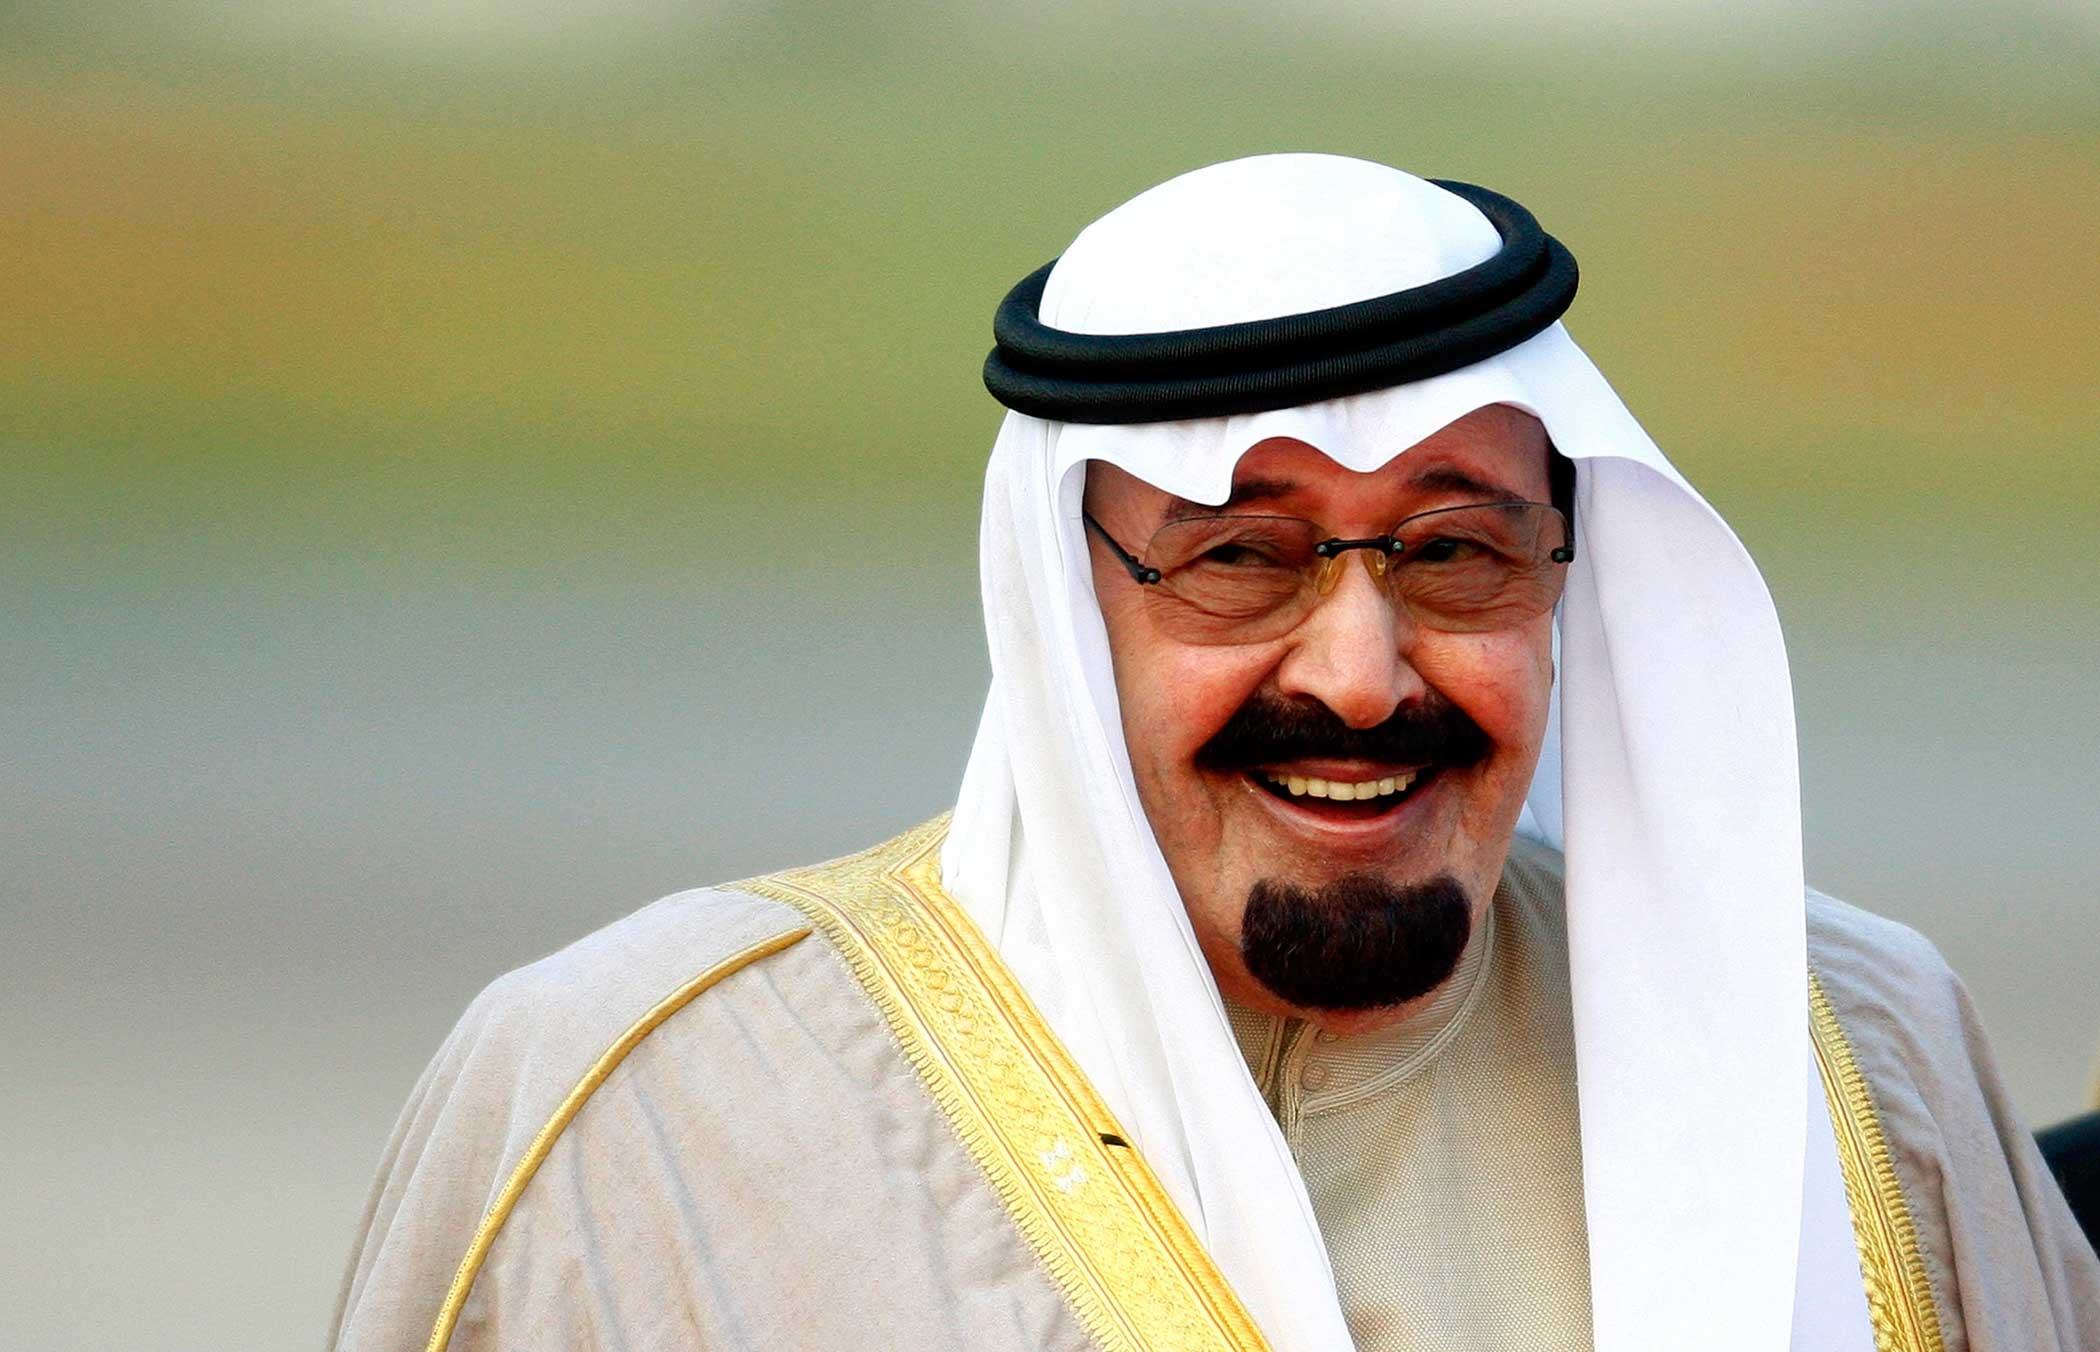 Saudi Arabia's King Abdullah arrives at Heathrow Airport in west London on Oct. 29, 2007.